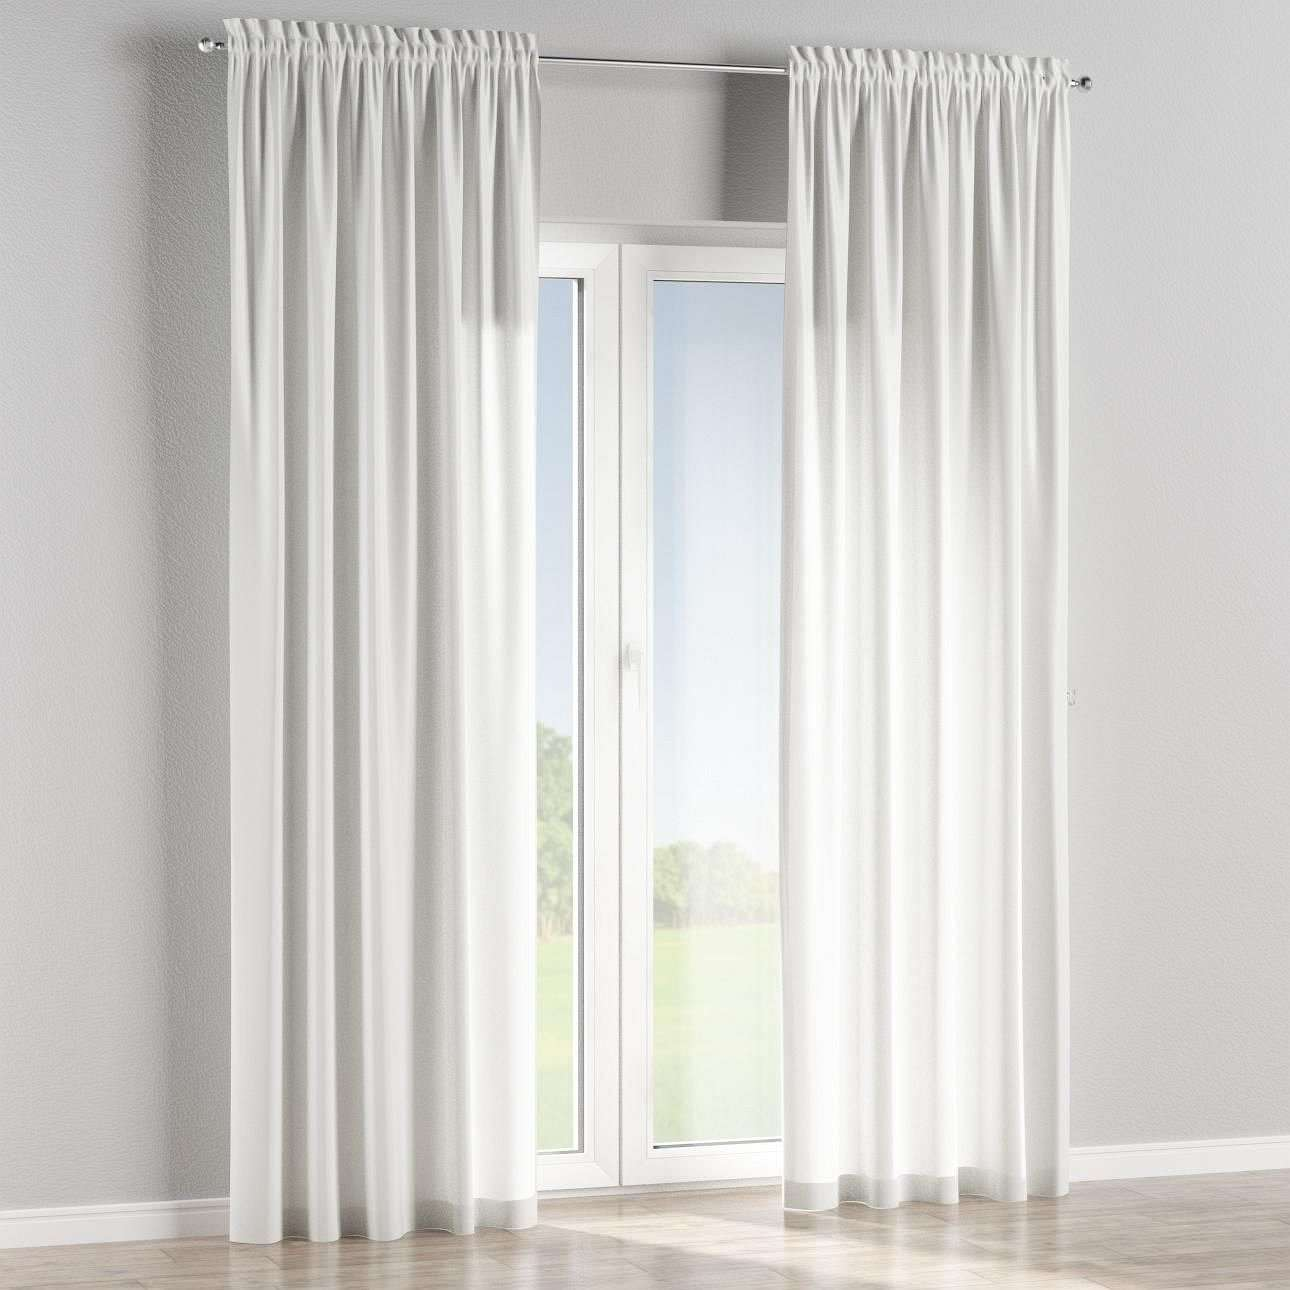 Slot and frill lined curtains in collection Comic Book & Geo Prints, fabric: 135-19